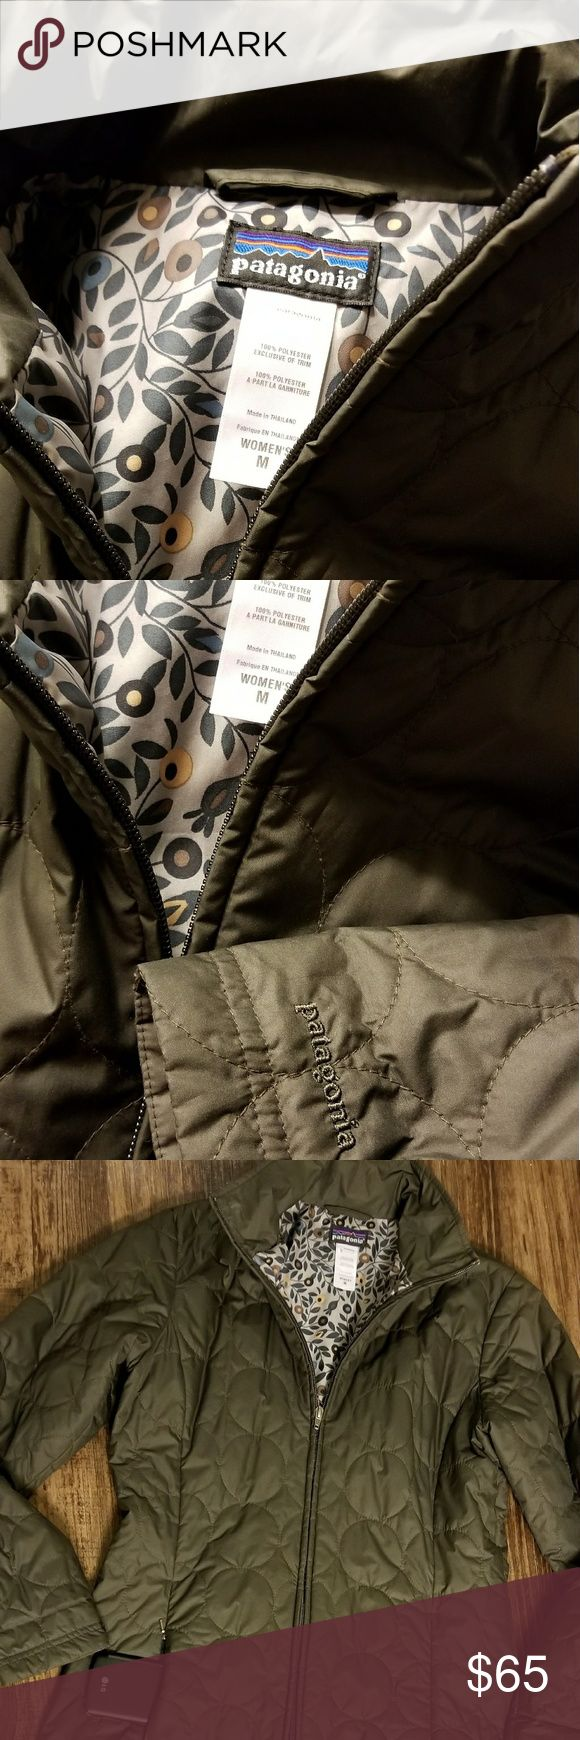 Patagonia Woman's Long Coat Size medium Olive Green Parka length & lightweight  Vintage coat with secret inner pocket & beautiful lining.   Circle quilt pattern & super soft to touch Appears new with no apparent sign of wear Patagonia Jackets & Coats Puffers